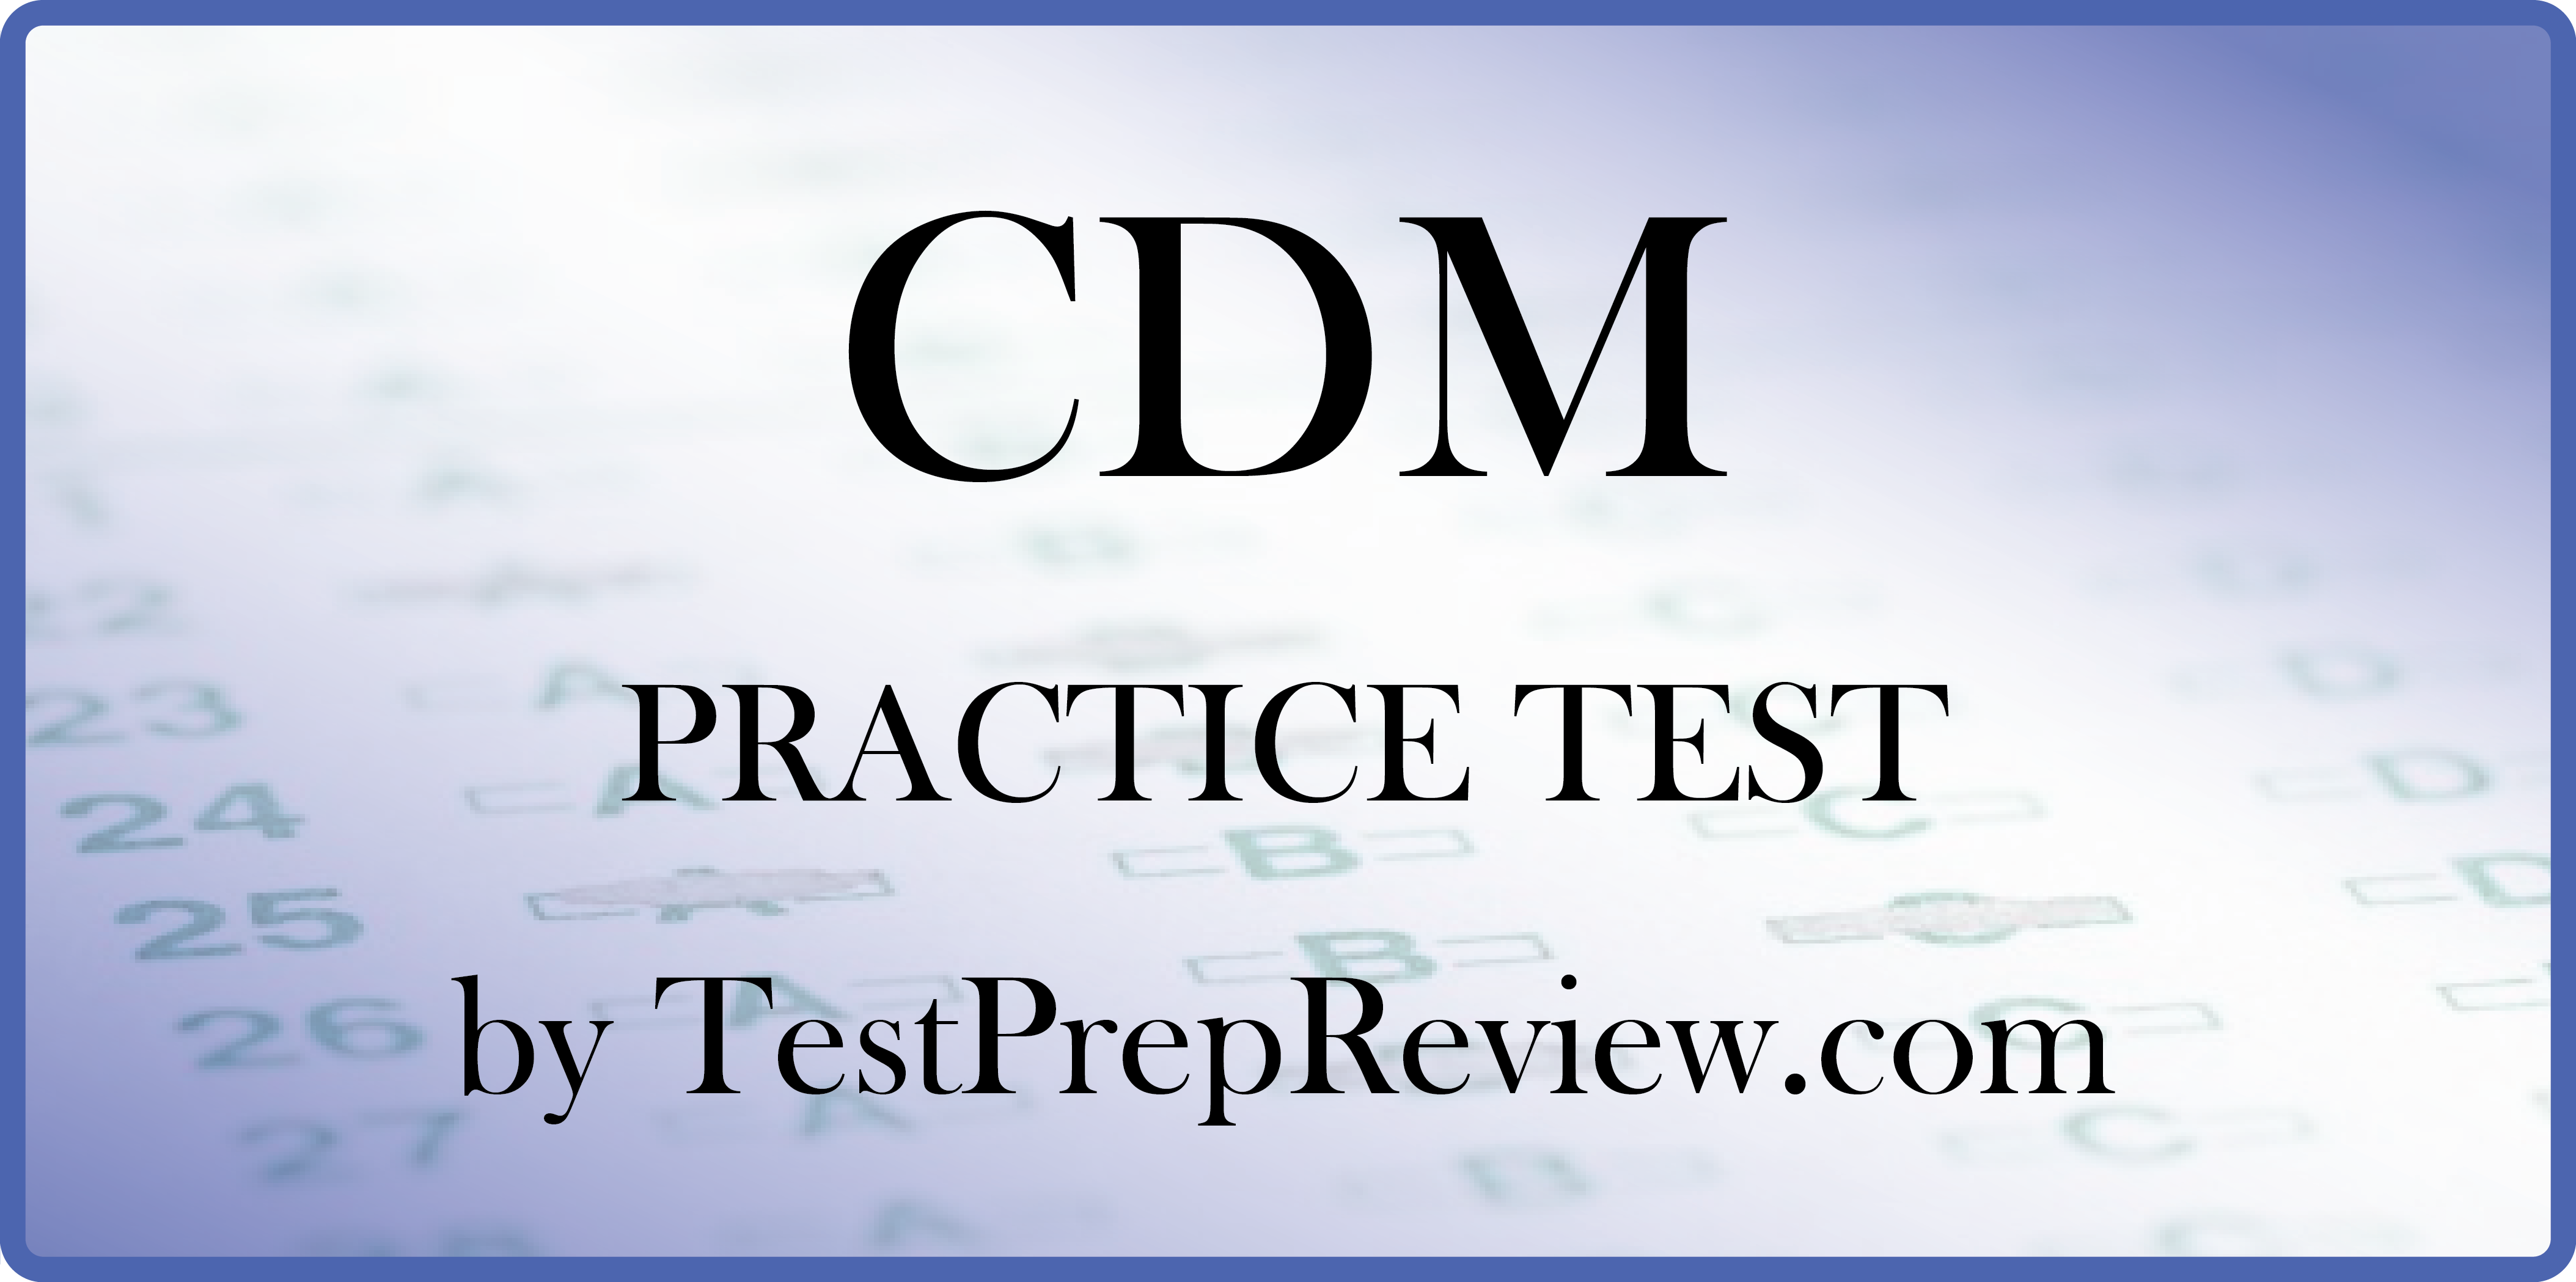 Free Cdm Practice Test Questions By Testprepreview Be Prepared For